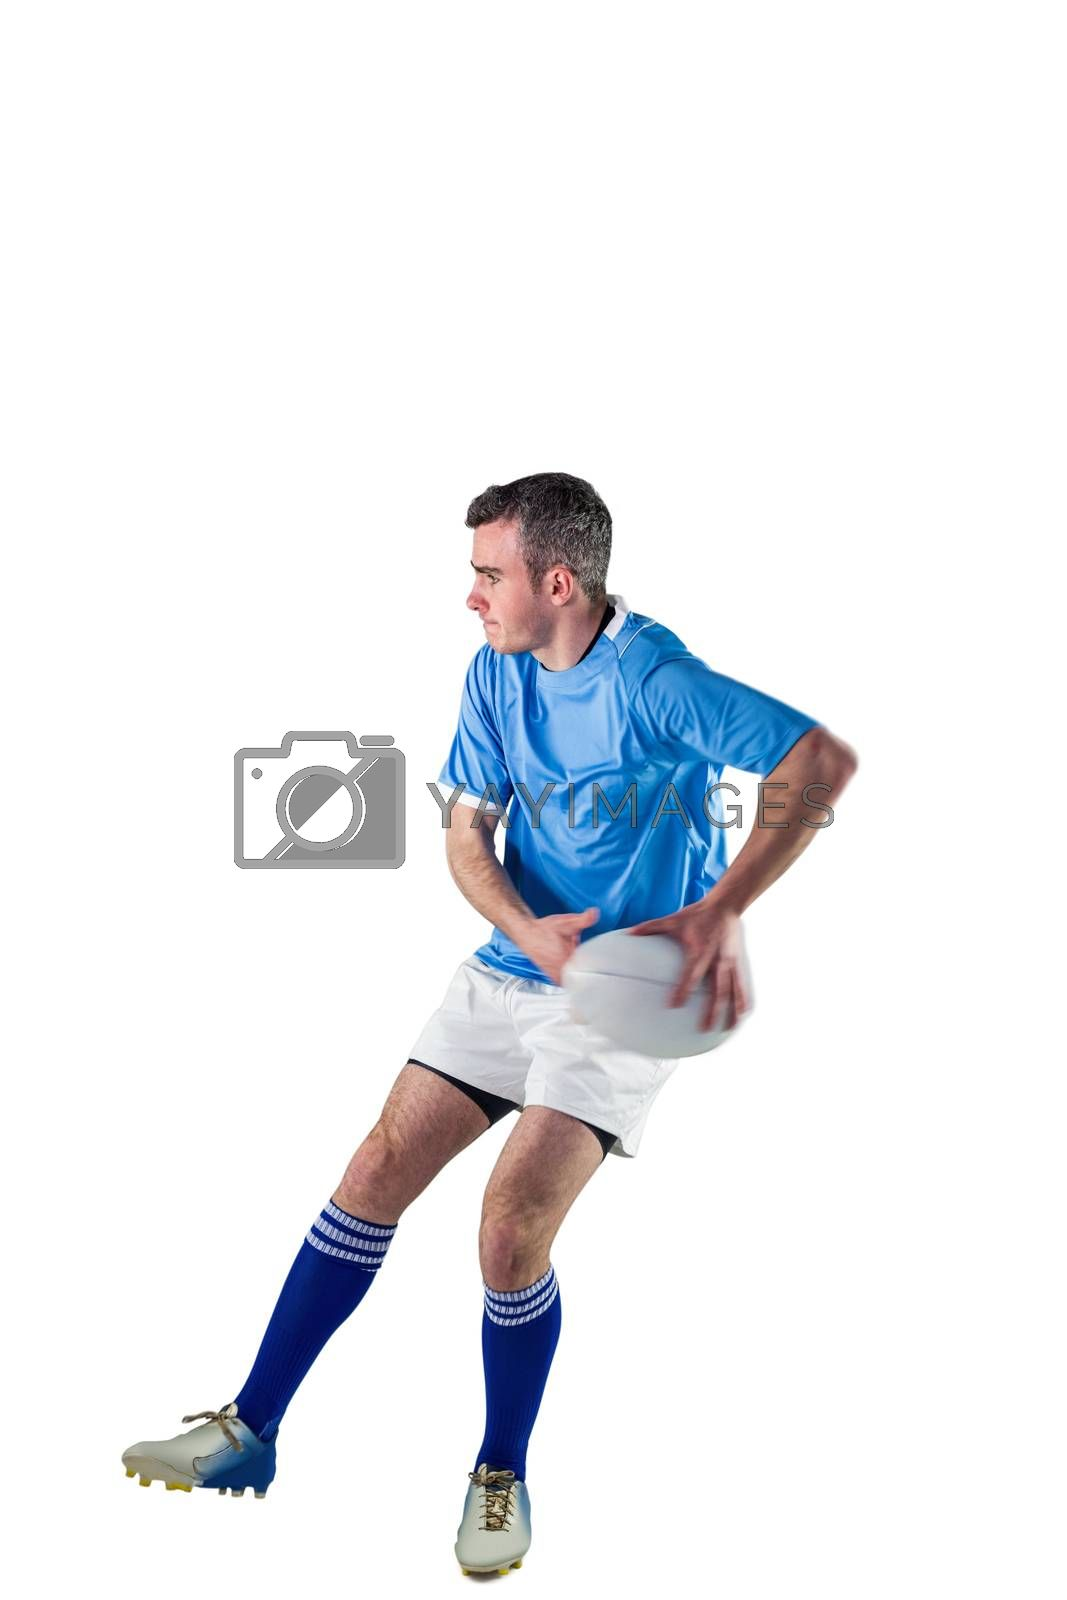 Royalty free image of Rugby player doing a side pass by Wavebreakmedia